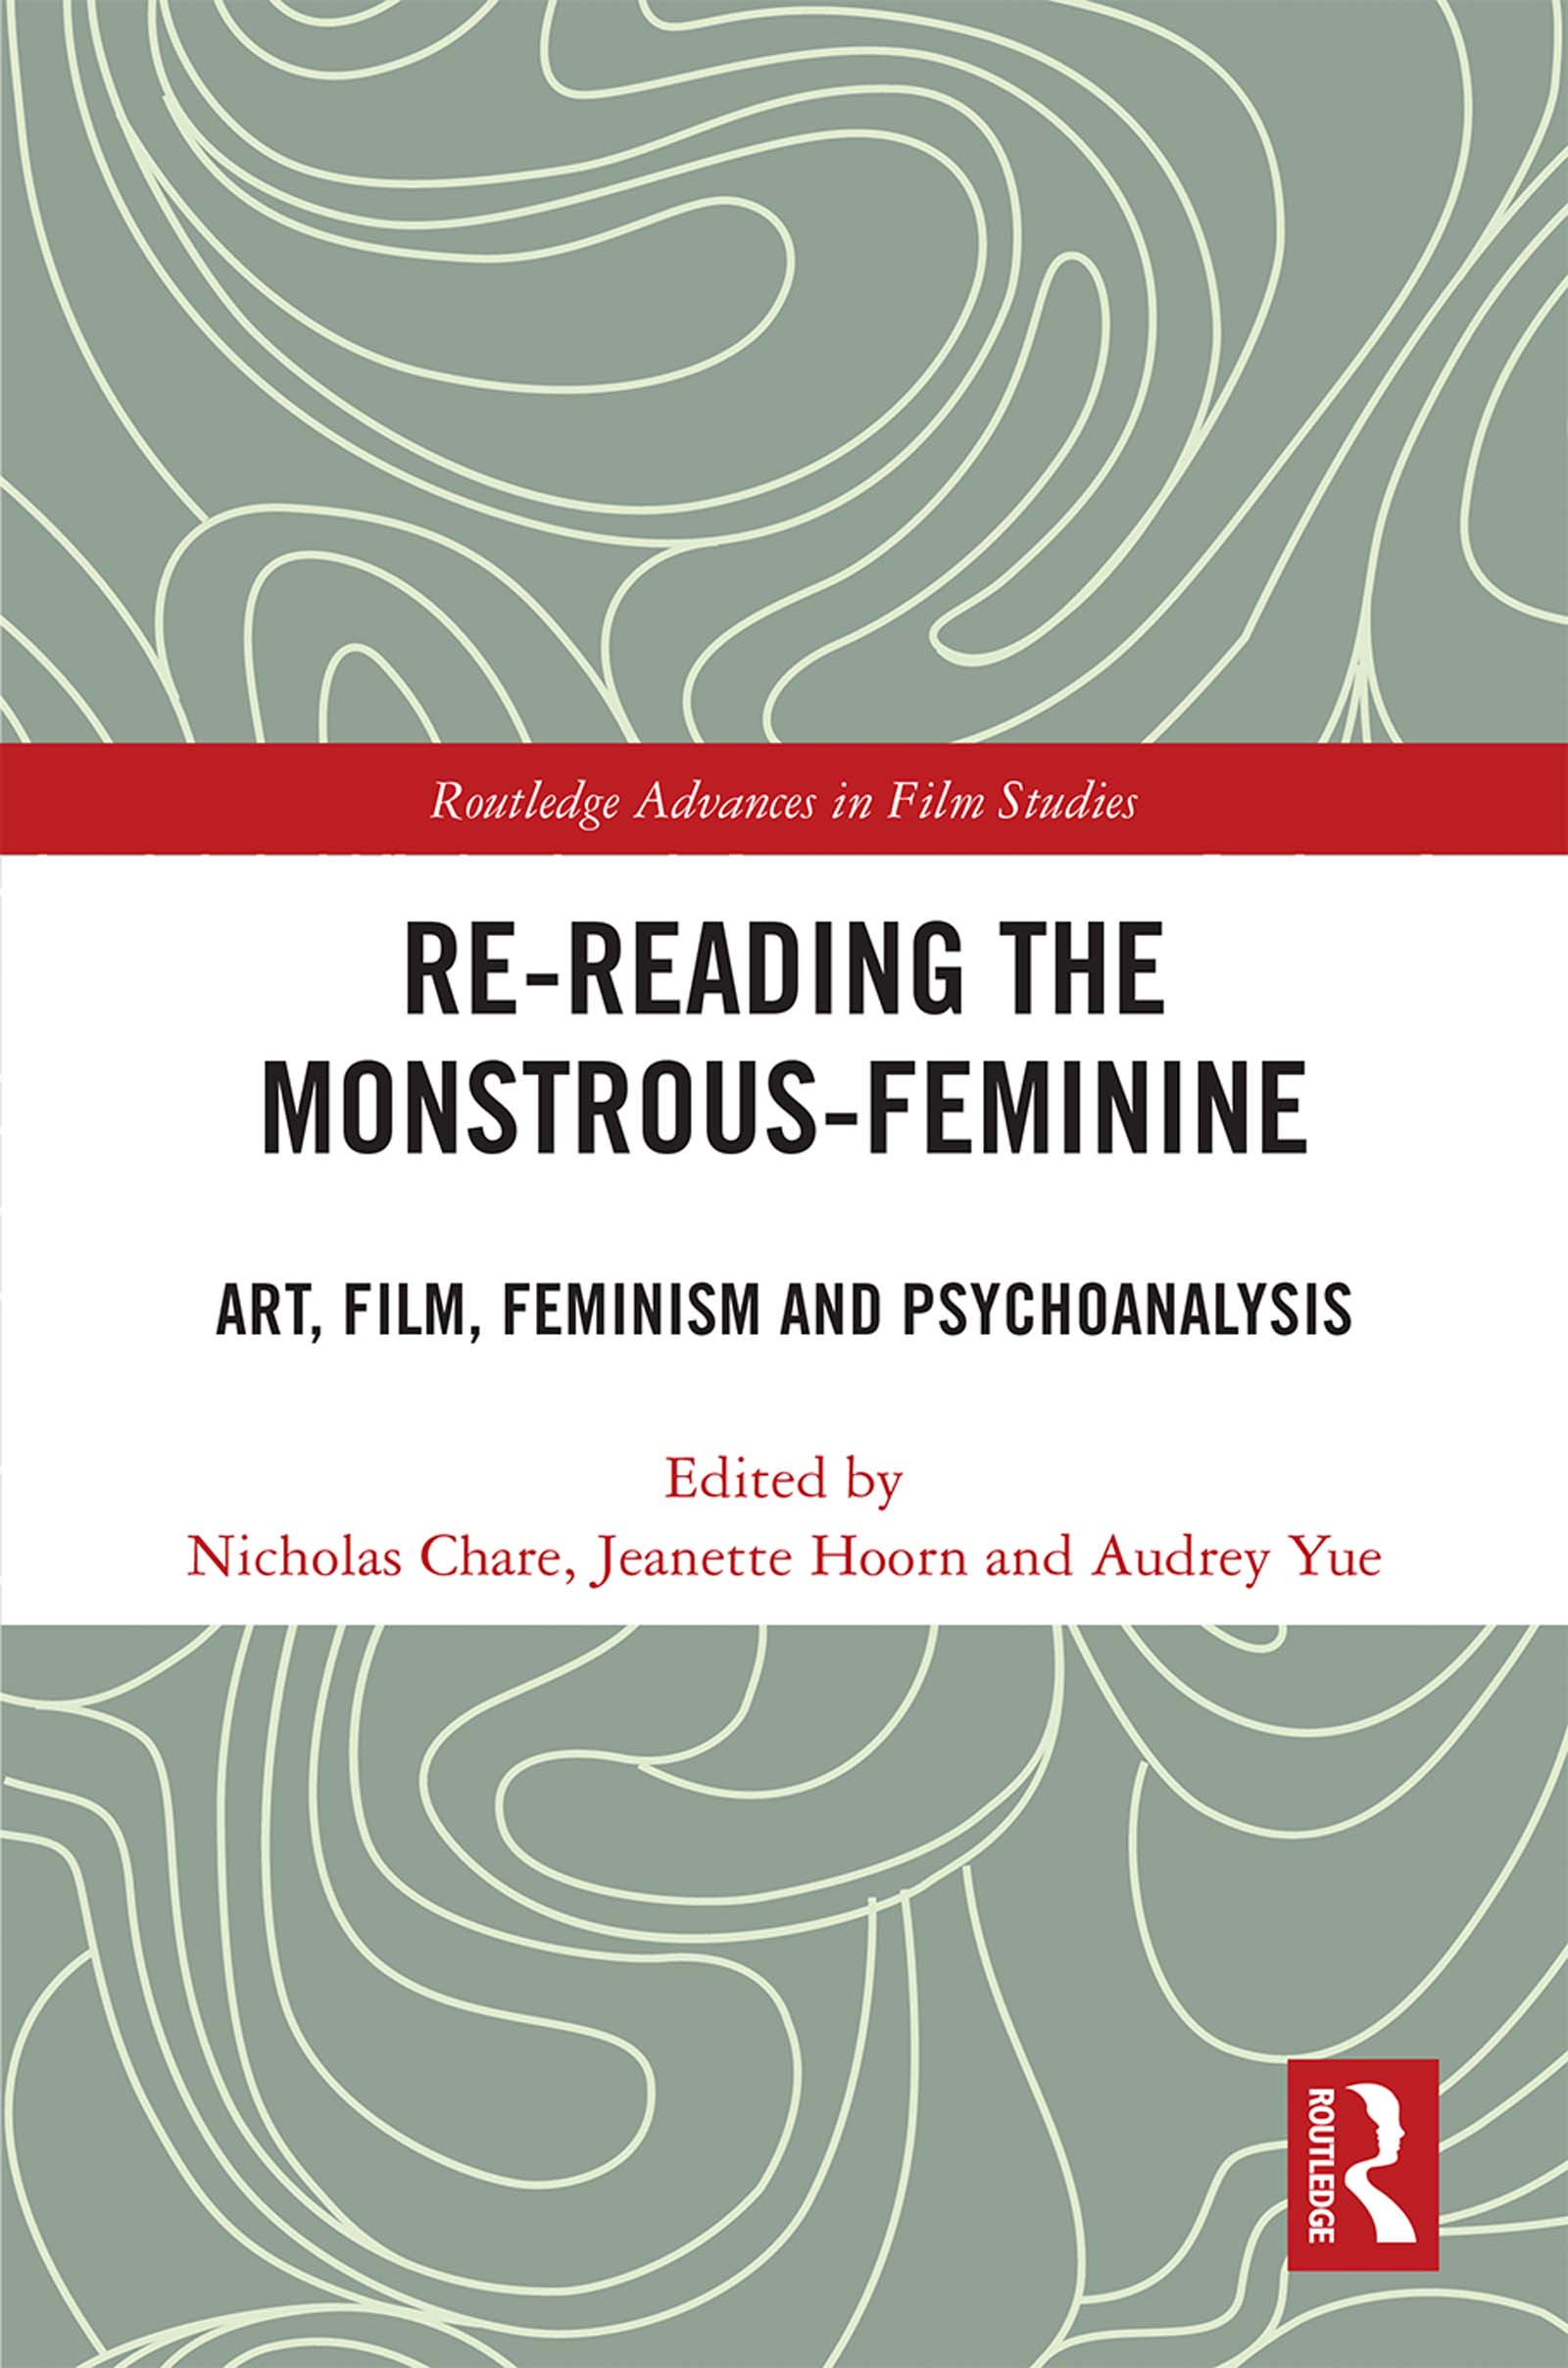 Re-reading the Monstrous-Feminine: Art, Film, Feminism and Psychoanalysis book cover